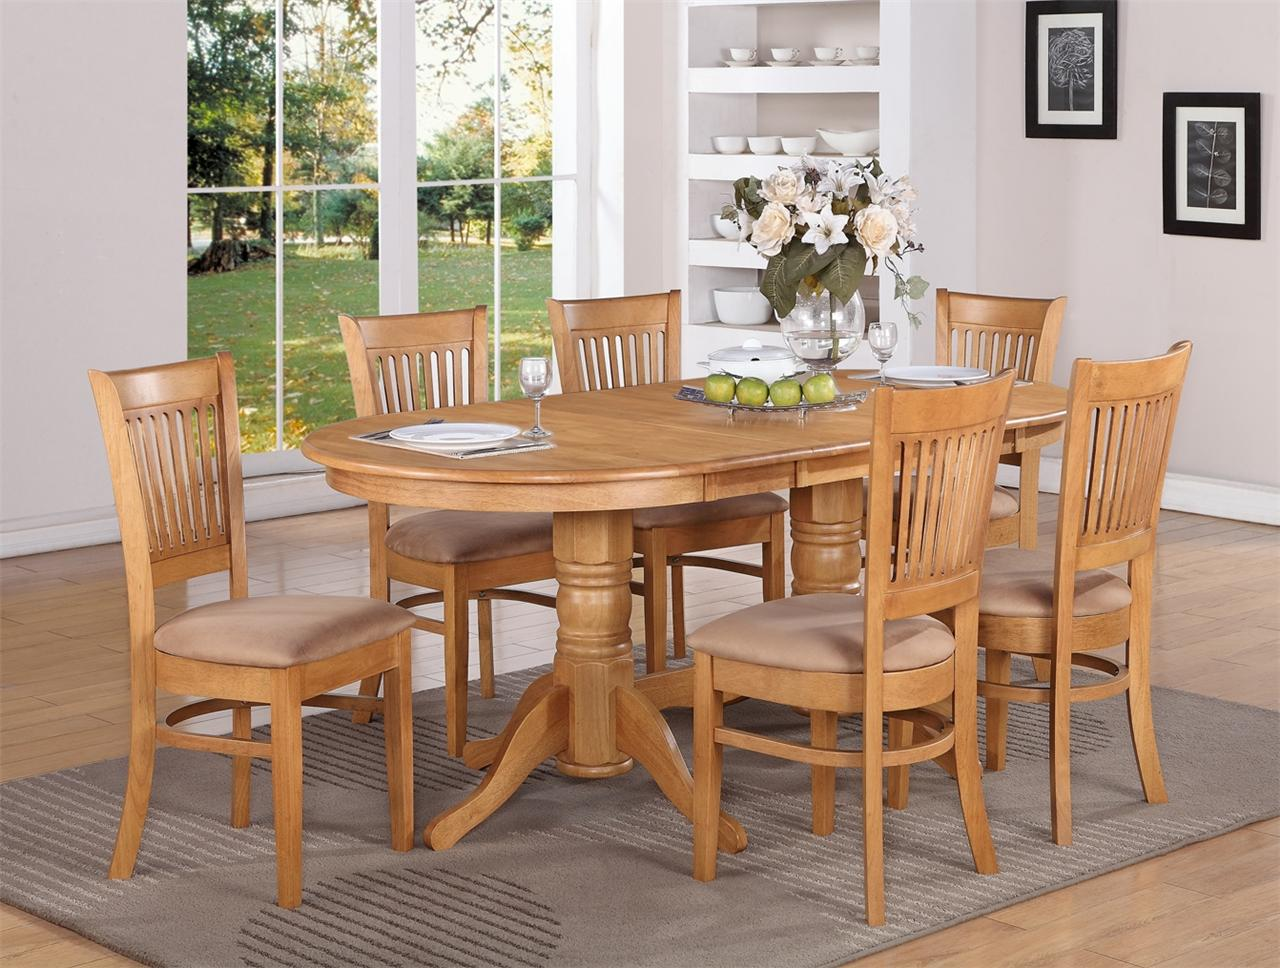 Pc vancouver oval dinette kitchen dining set table w